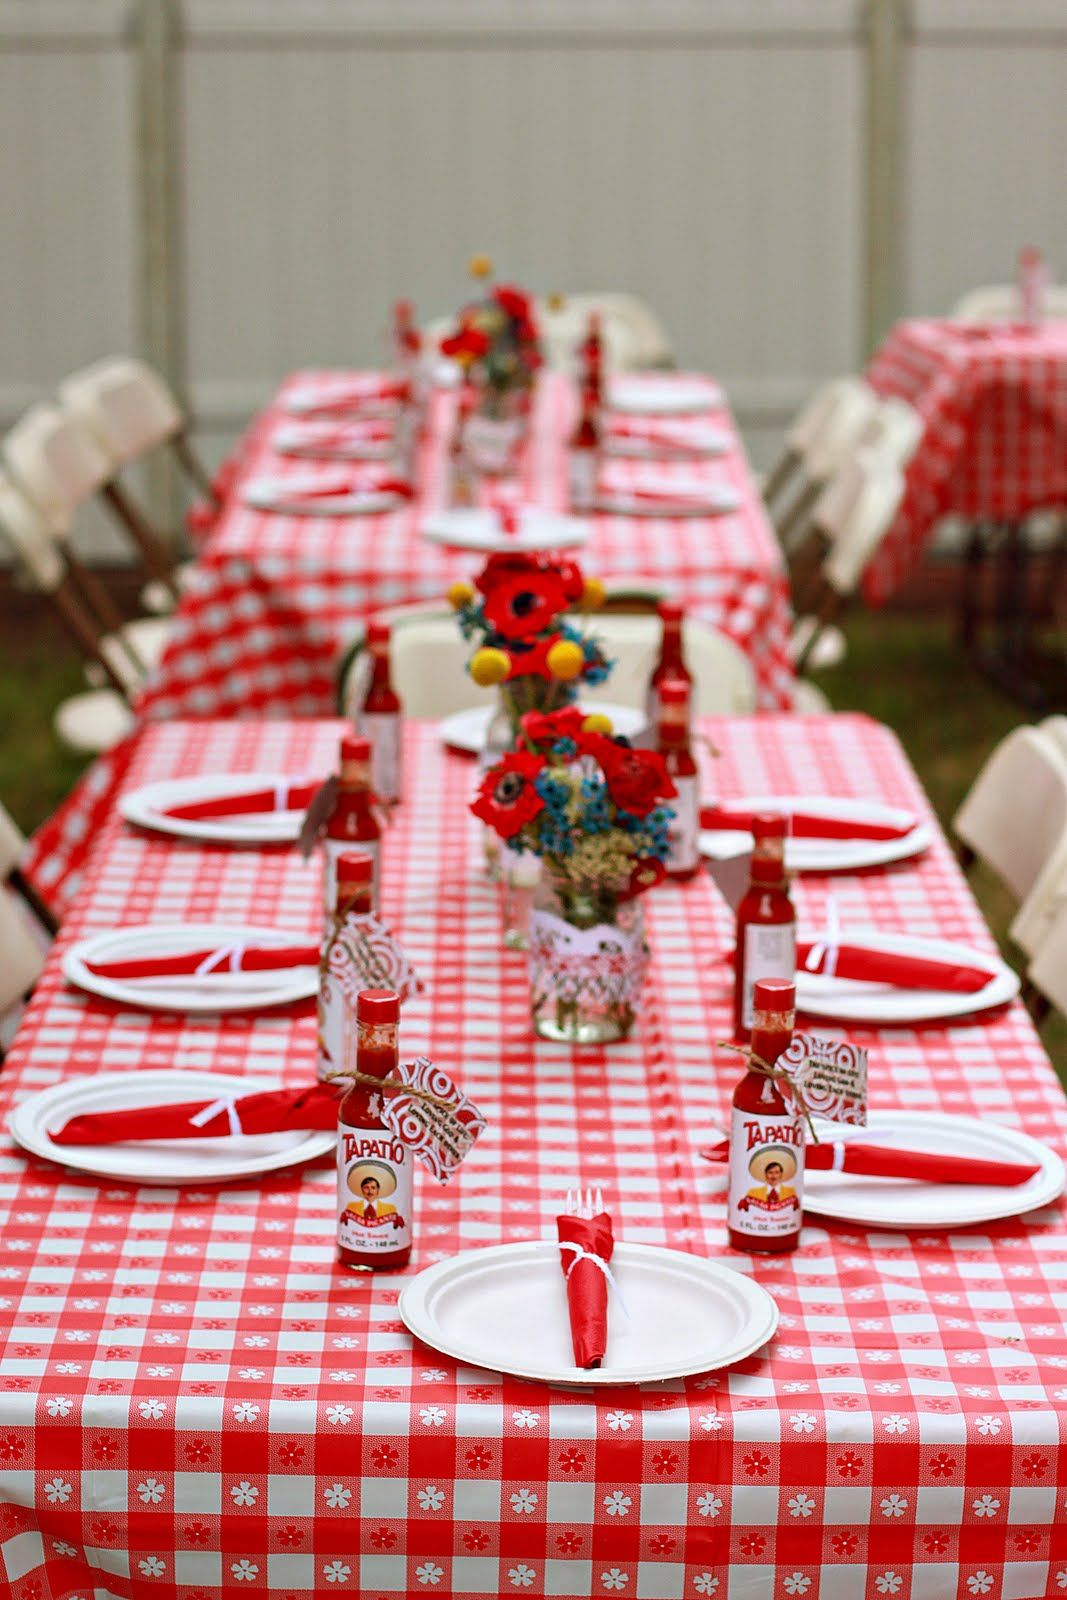 Bbq wedding ideas creative ideas backyard bbq wedding for Baby shower bbq decoration ideas